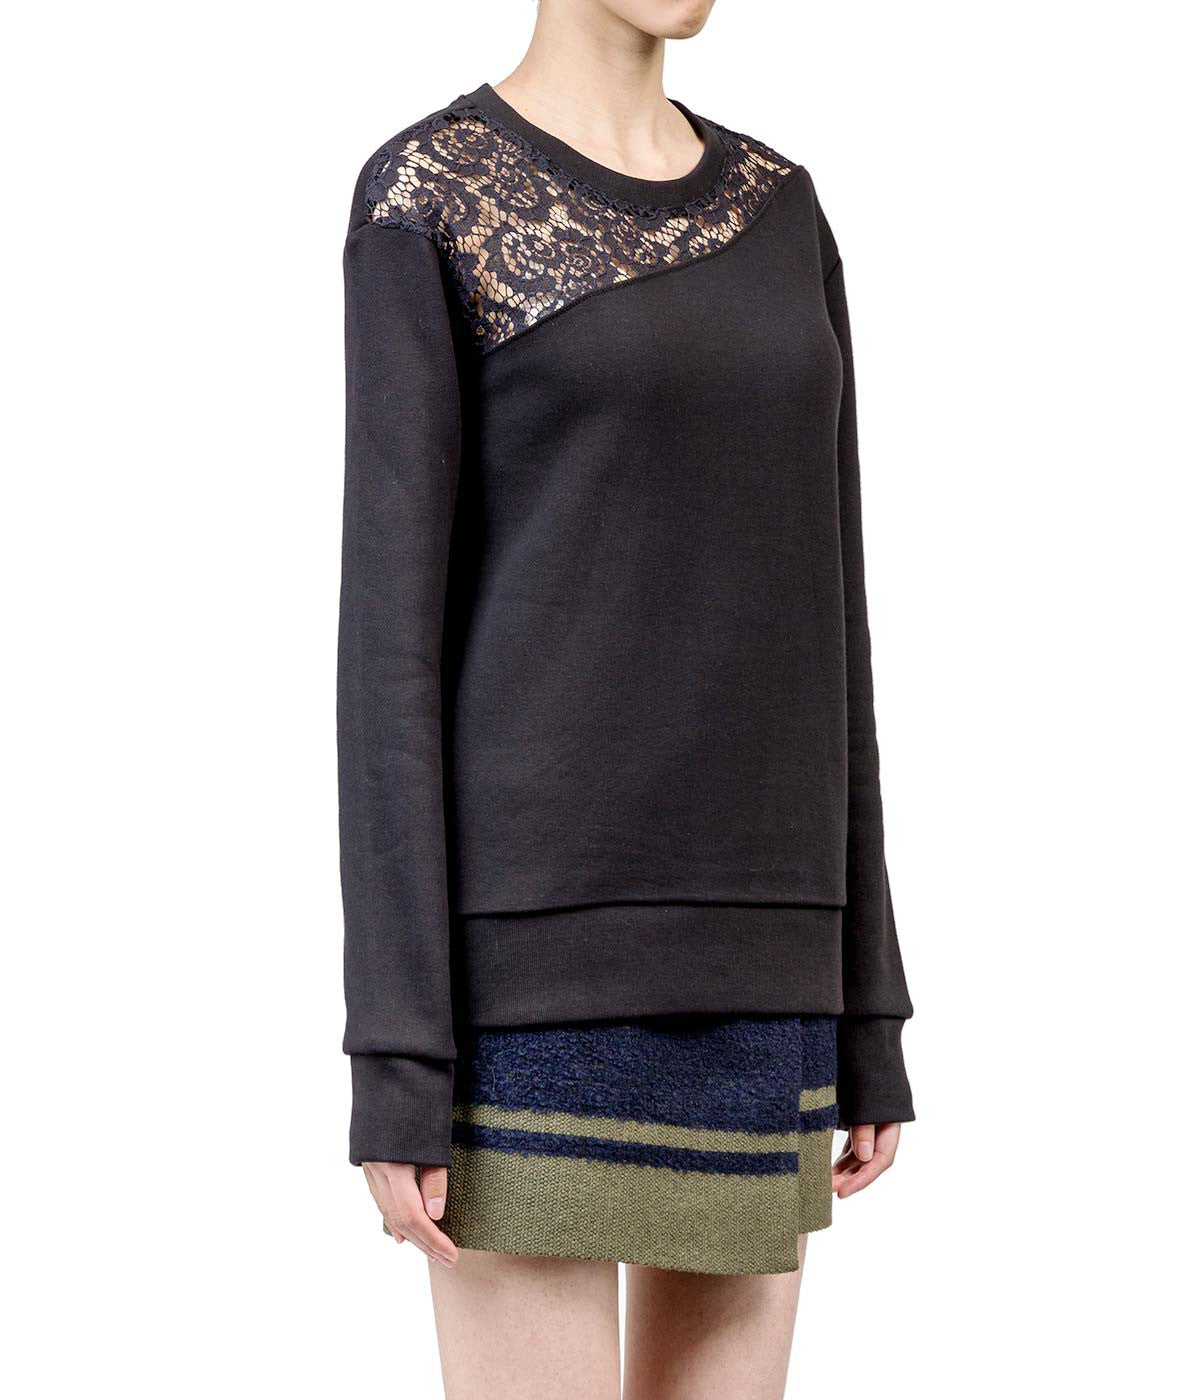 Black Lace Inset Sweatshirt